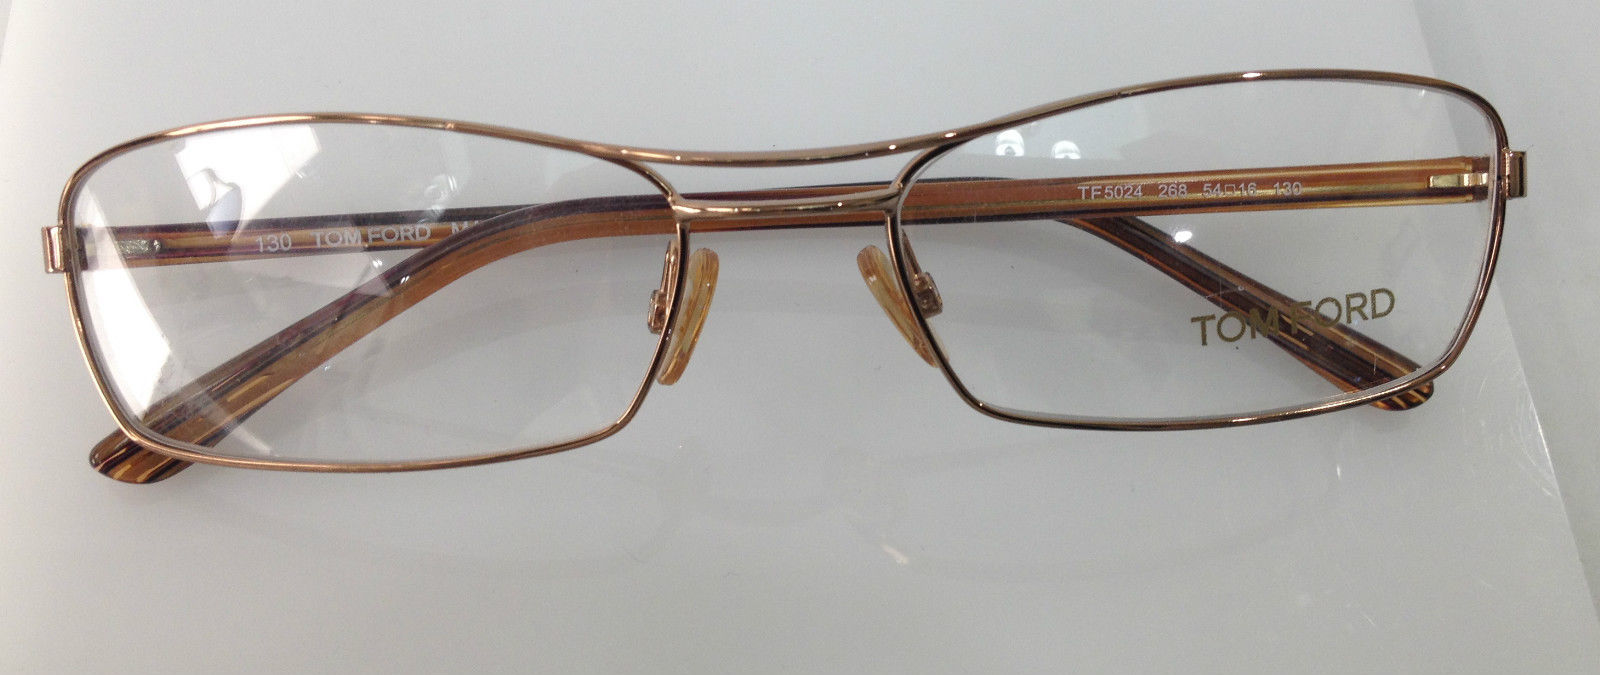 TOM FORD TF 5024 COLOR 268 LIGHT BROWN METAL EYEGLASSES ...